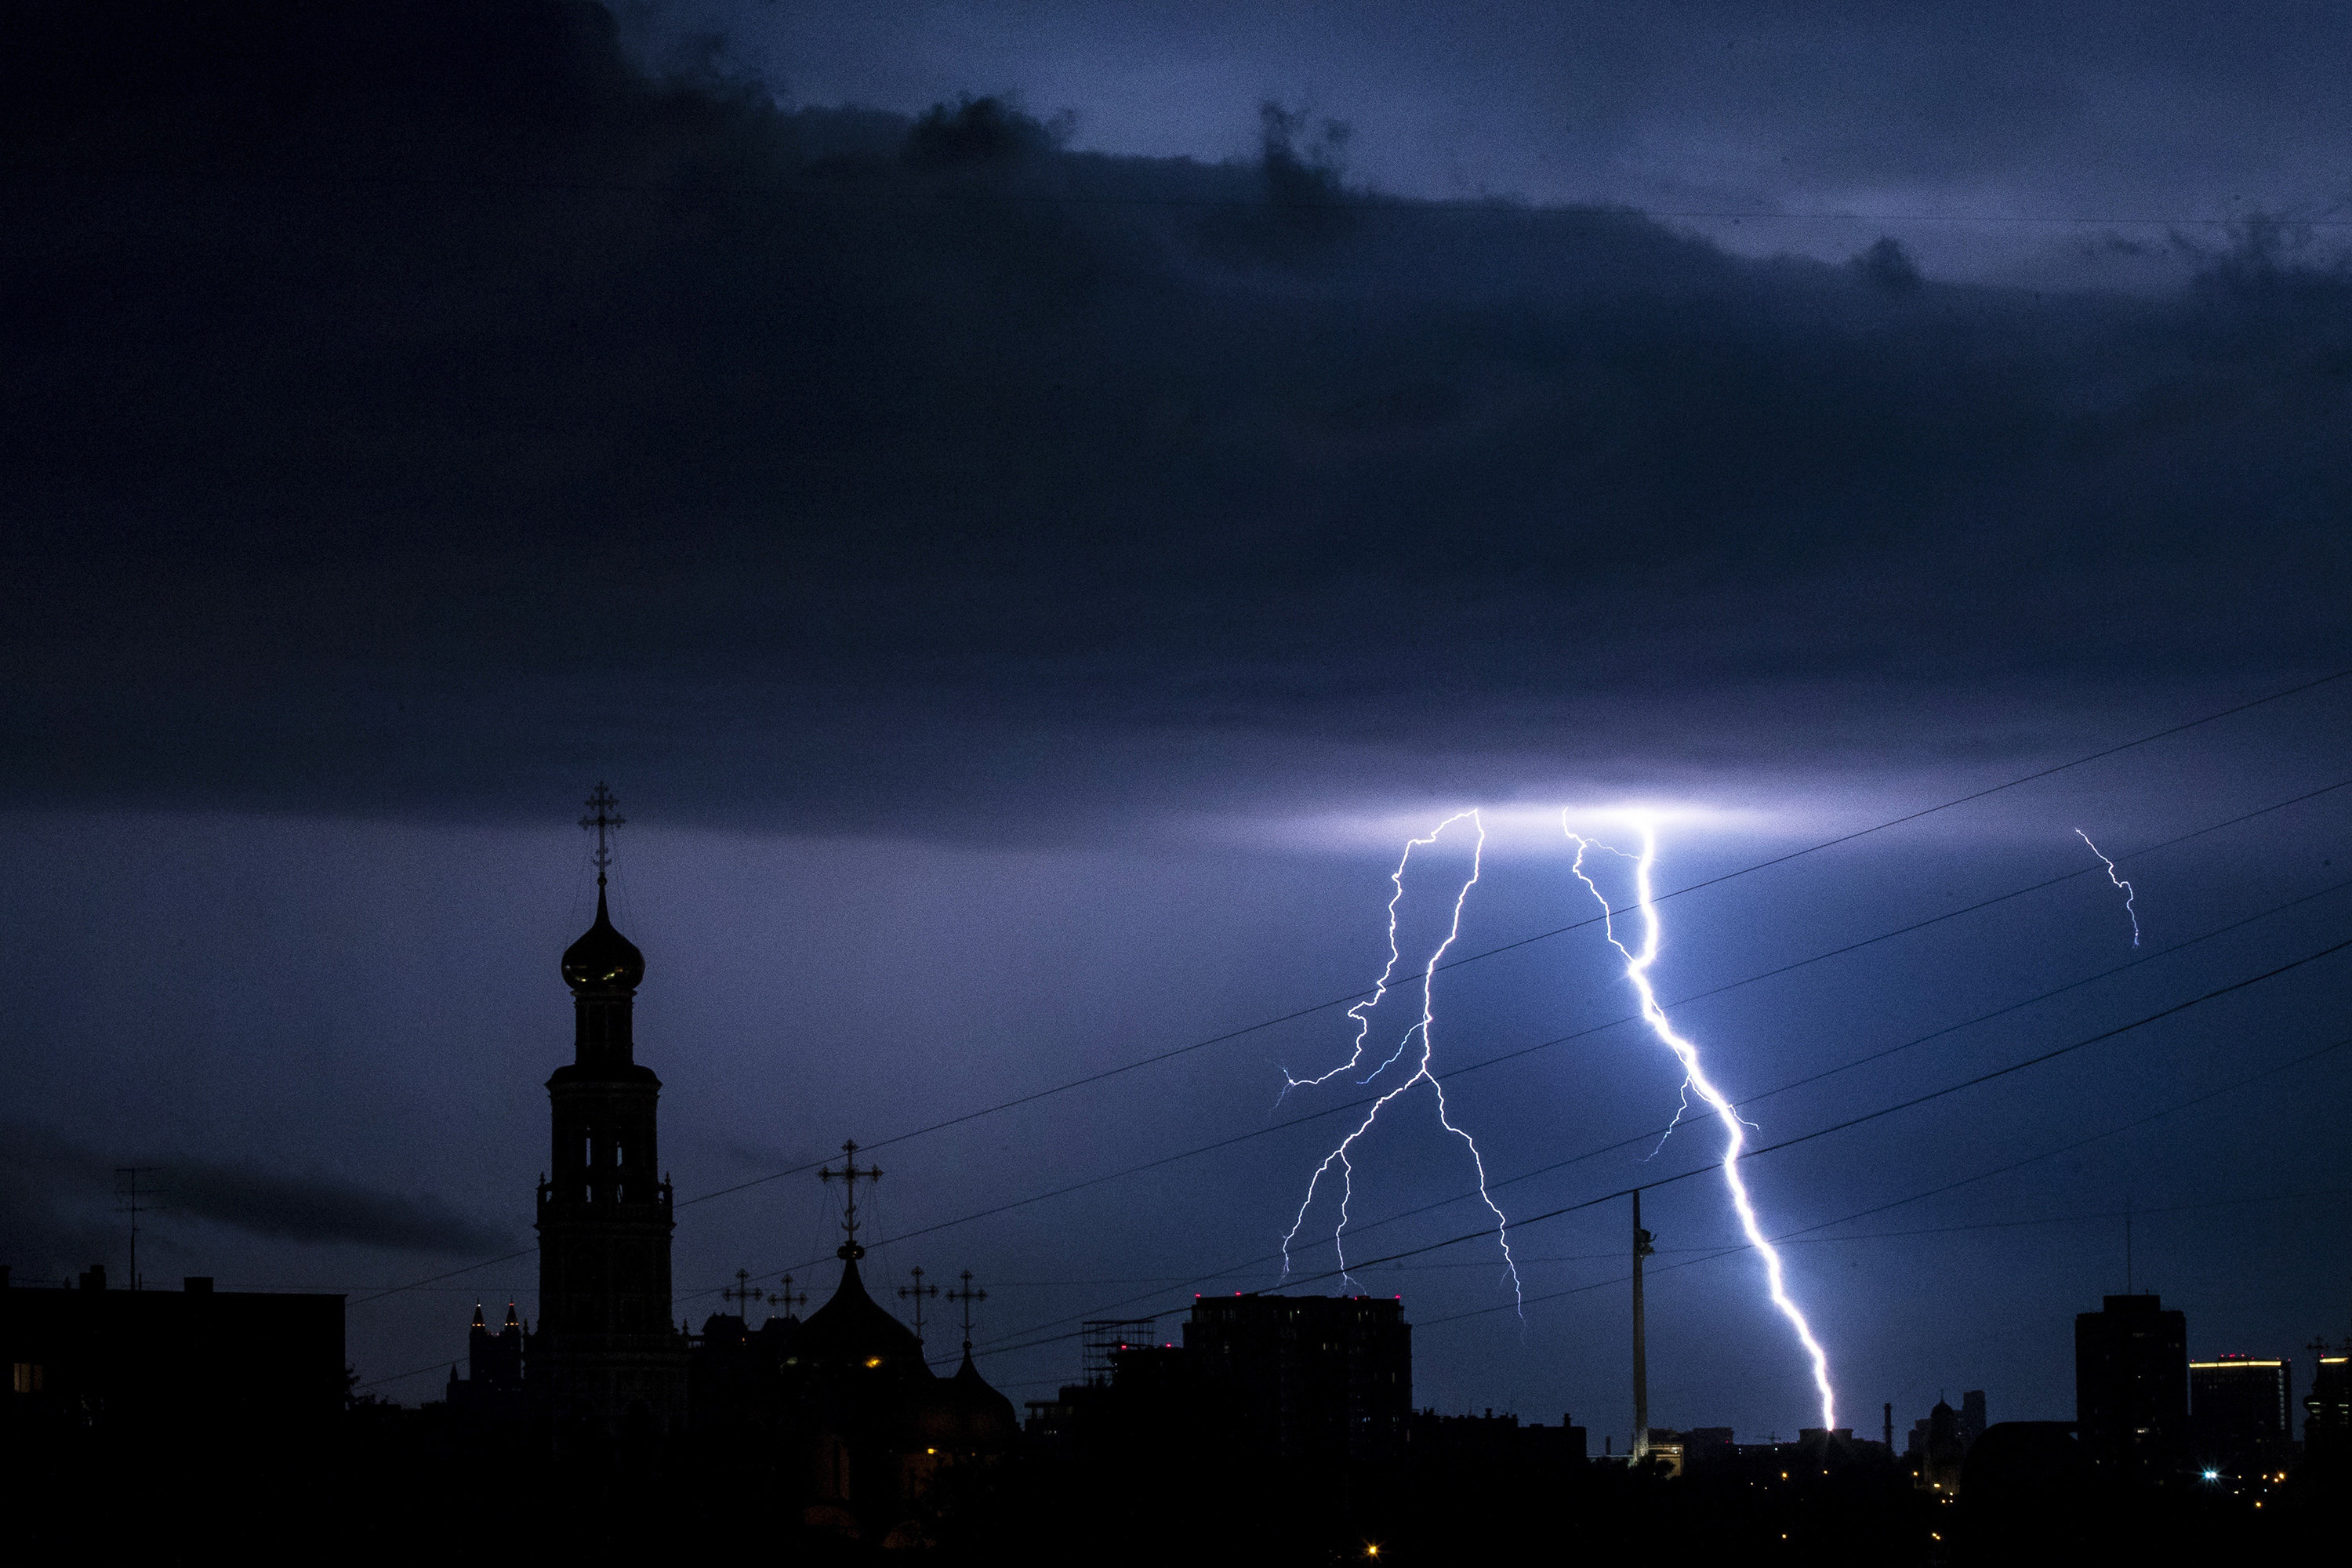 Lightning strikes over the Poklonnaya Hill, and lights the Novodevichy Convent, left, in Moscow, Russia, late Tuesday, July 7, 2020. The hot weather in Moscow is continuing, with temperatures forecast to reach over 30 degrees Celsius (86 Fahrenheit). (AP Photo/)